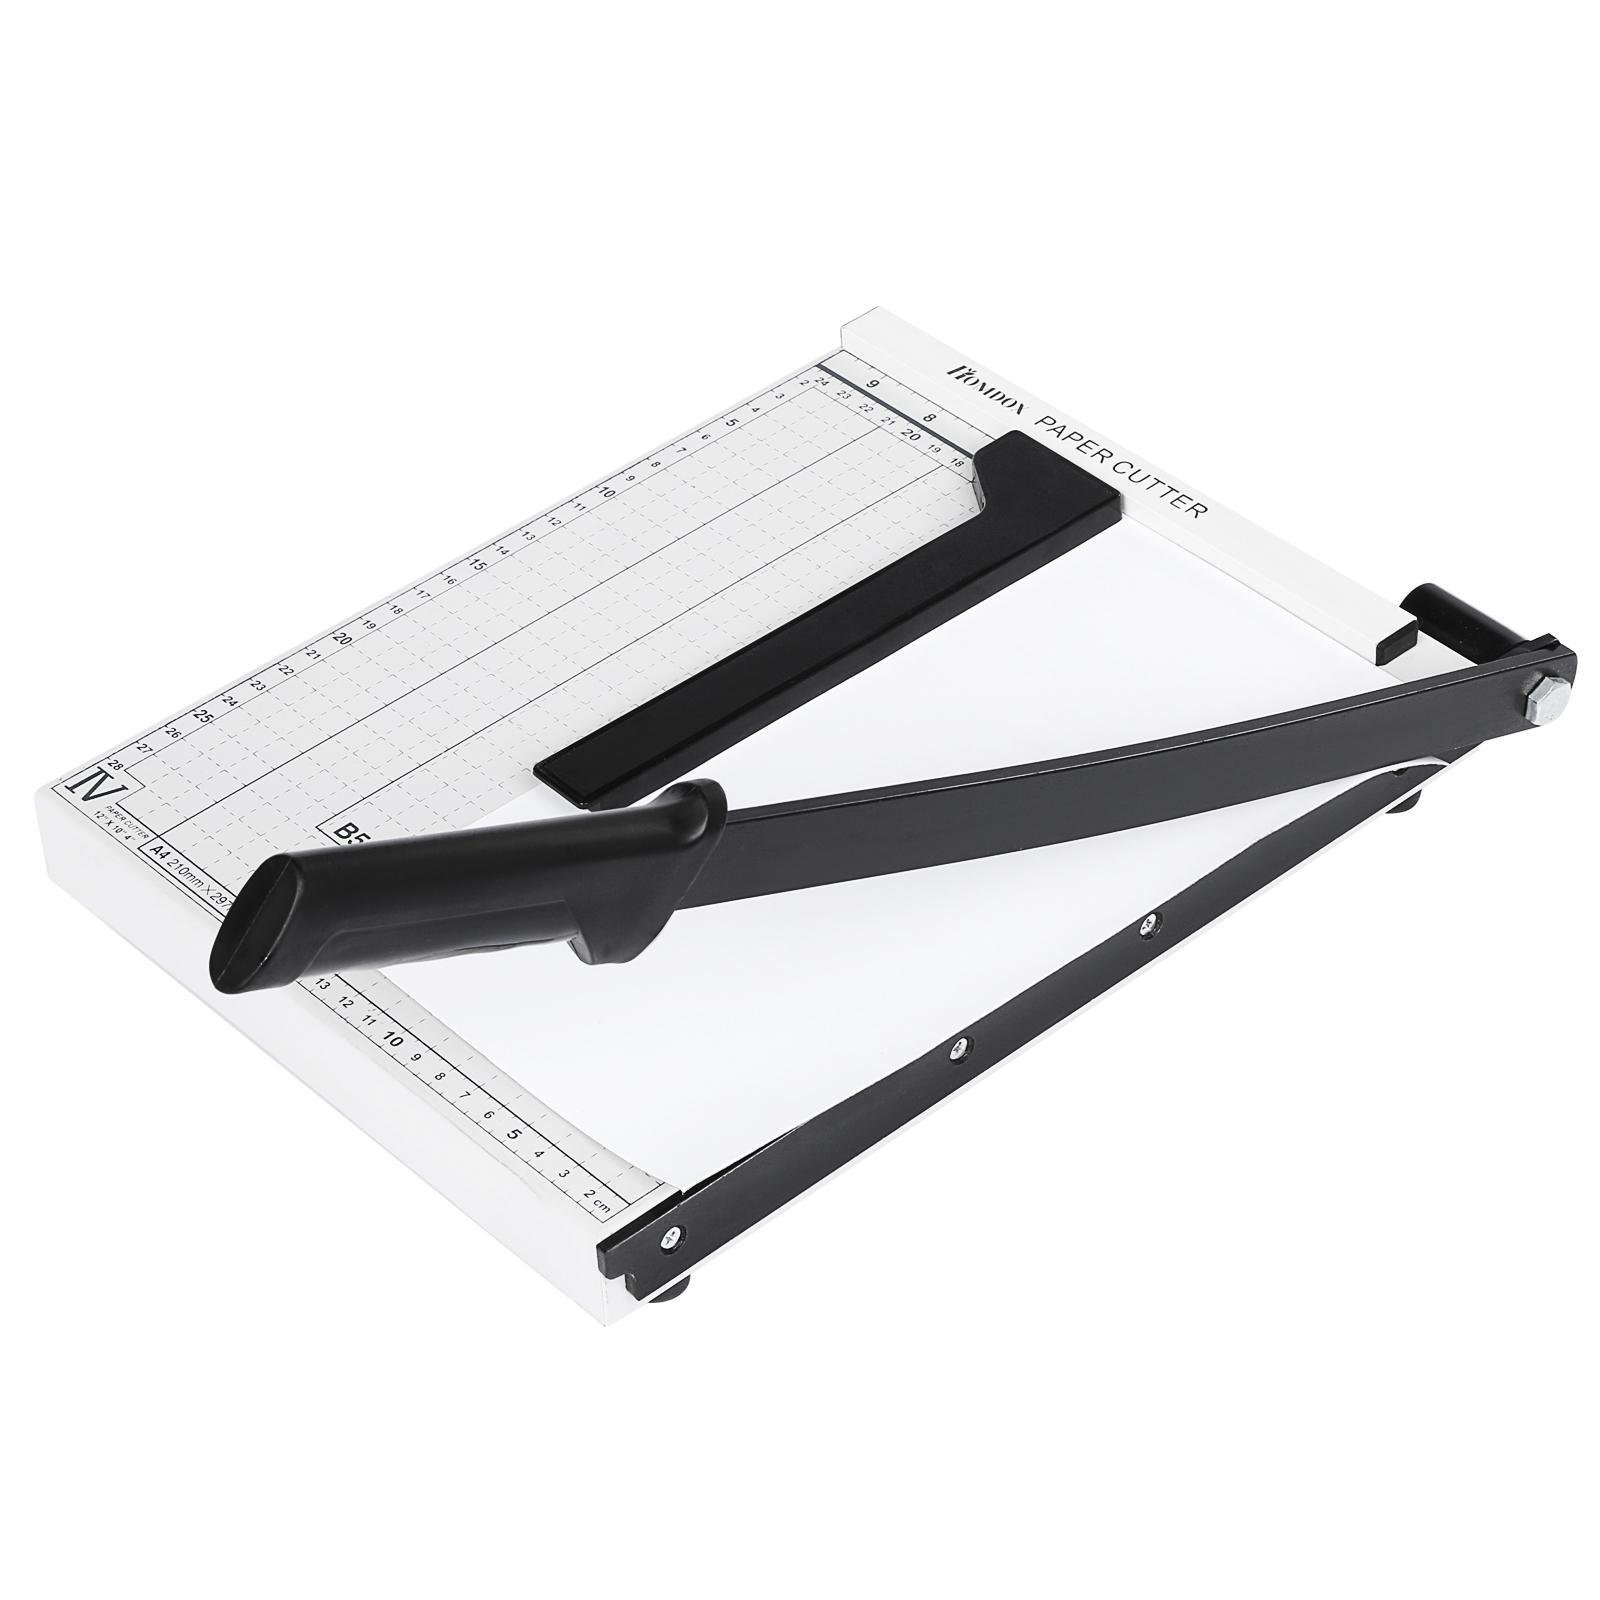 carsget Professional Guillotine Lever Style Black Handle Paper Trimmer A5 Cutter Business Card Photo B6 Cutter Commercial Grade Square Guillotine Trimmer for Classroom Dresses